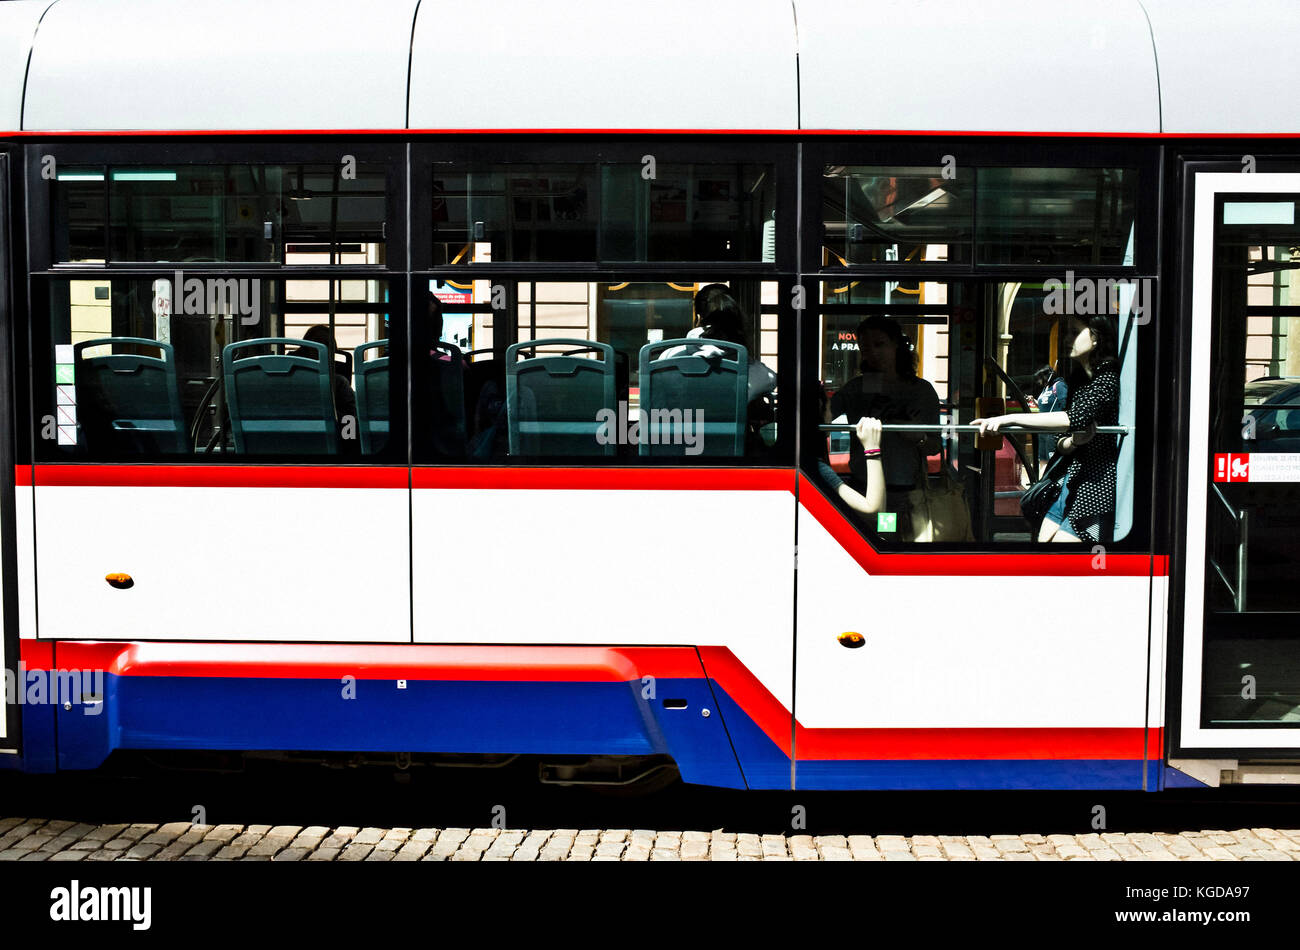 people in a tramway in Olomouc - Stock Image